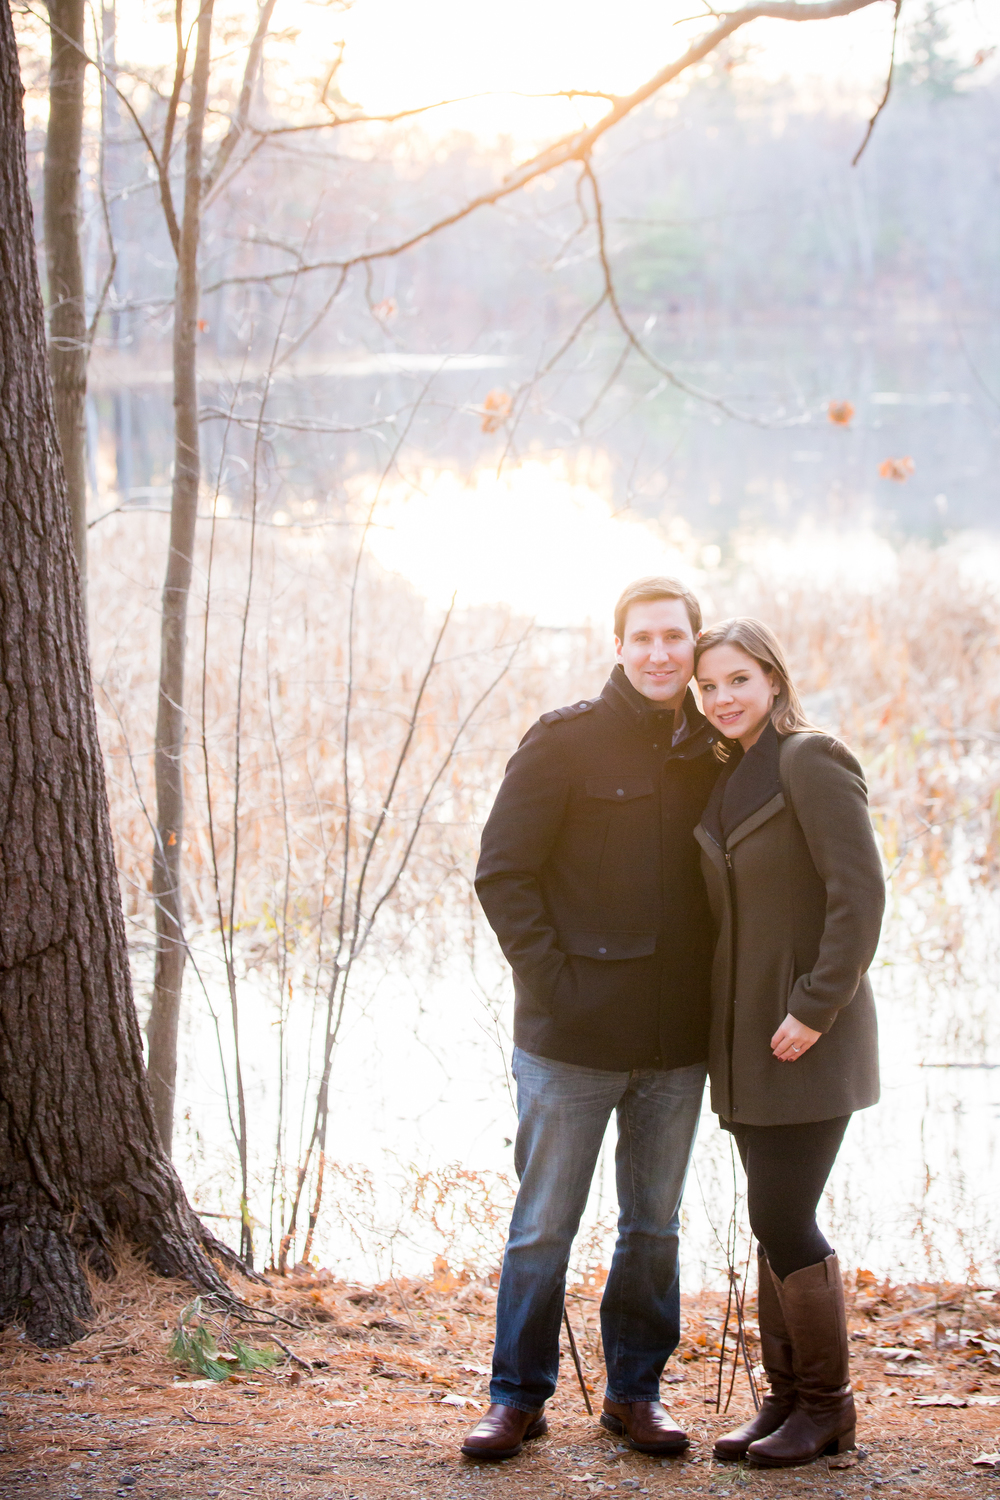 engagement photos by a pond